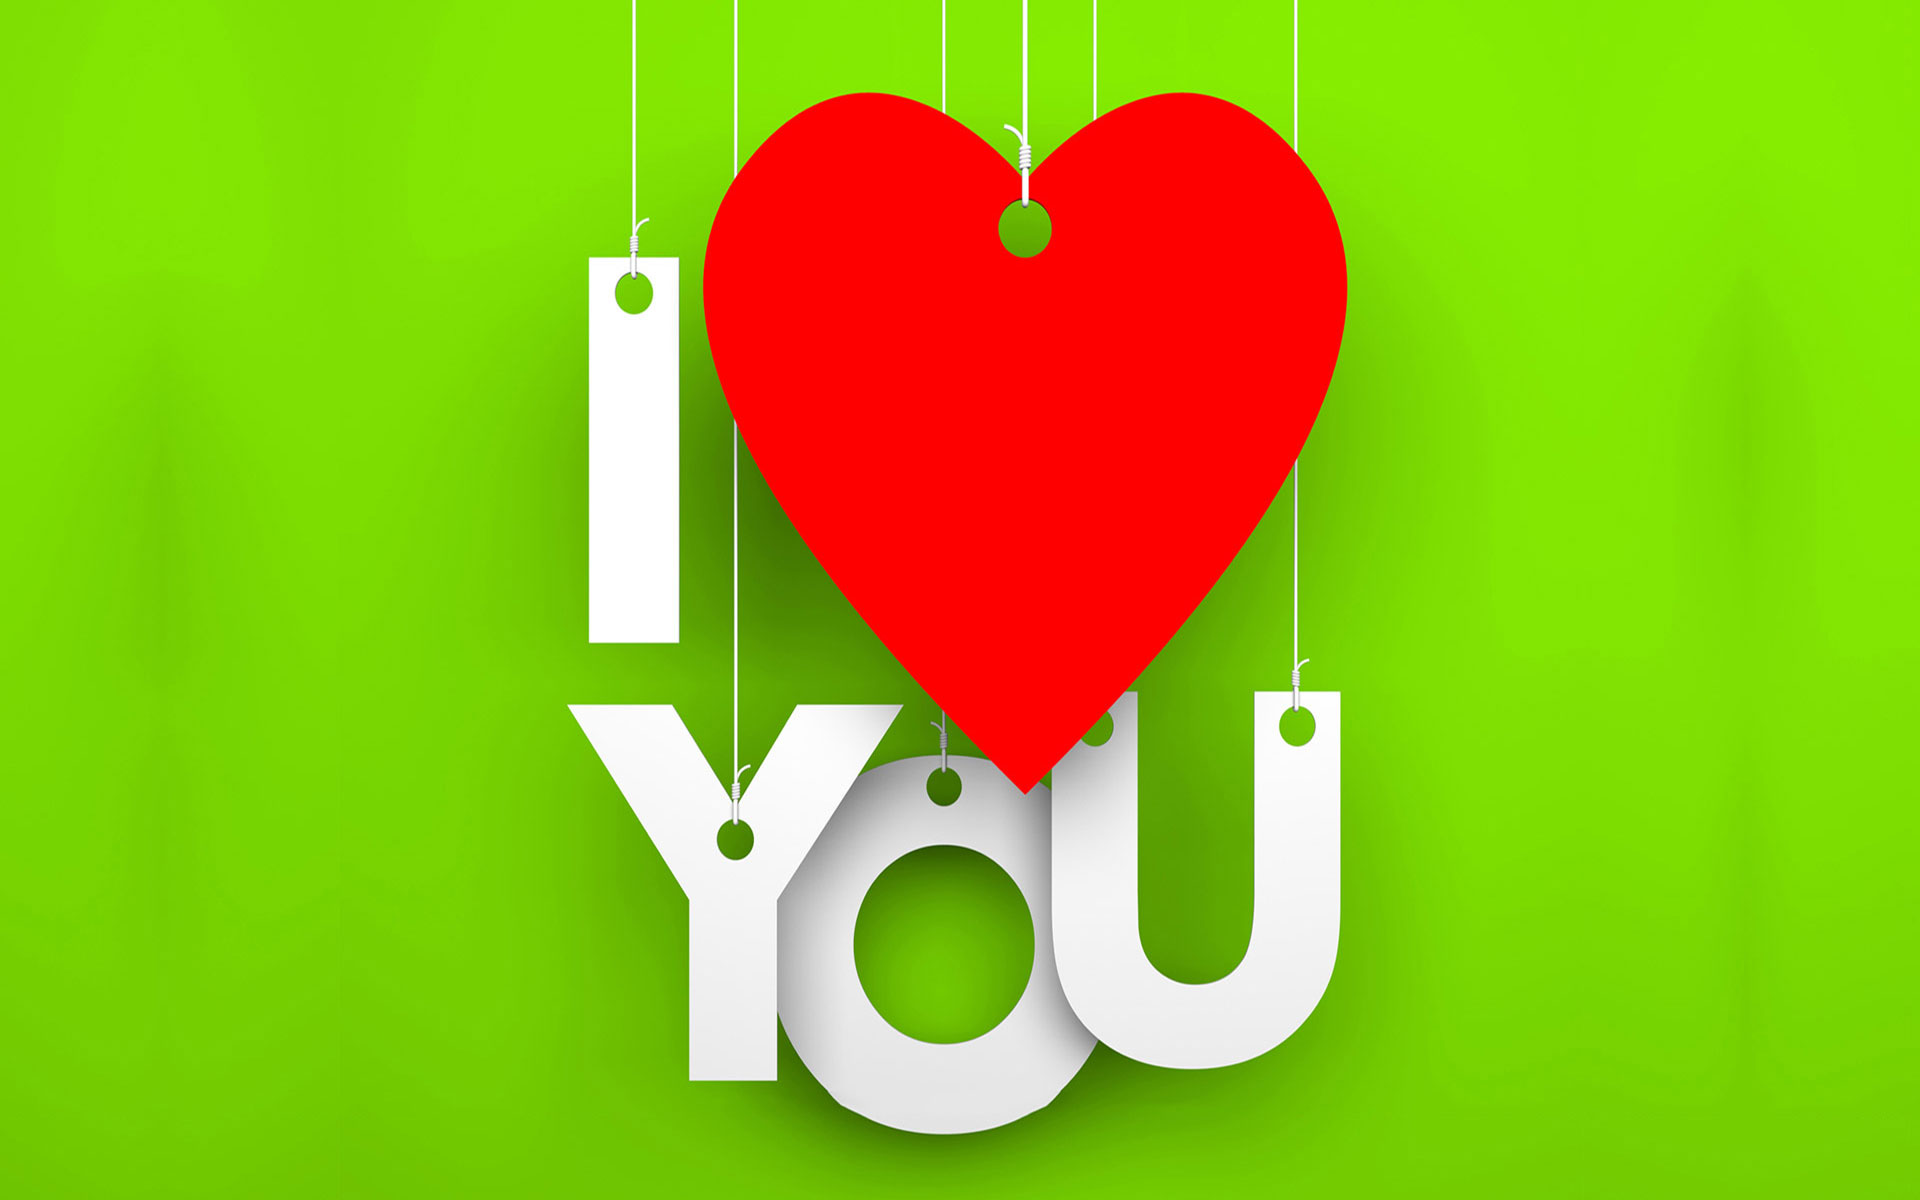 Love U Wallpaper Full Hd : 25+ Free HD I Love You Wallpapers cute I Love You Images